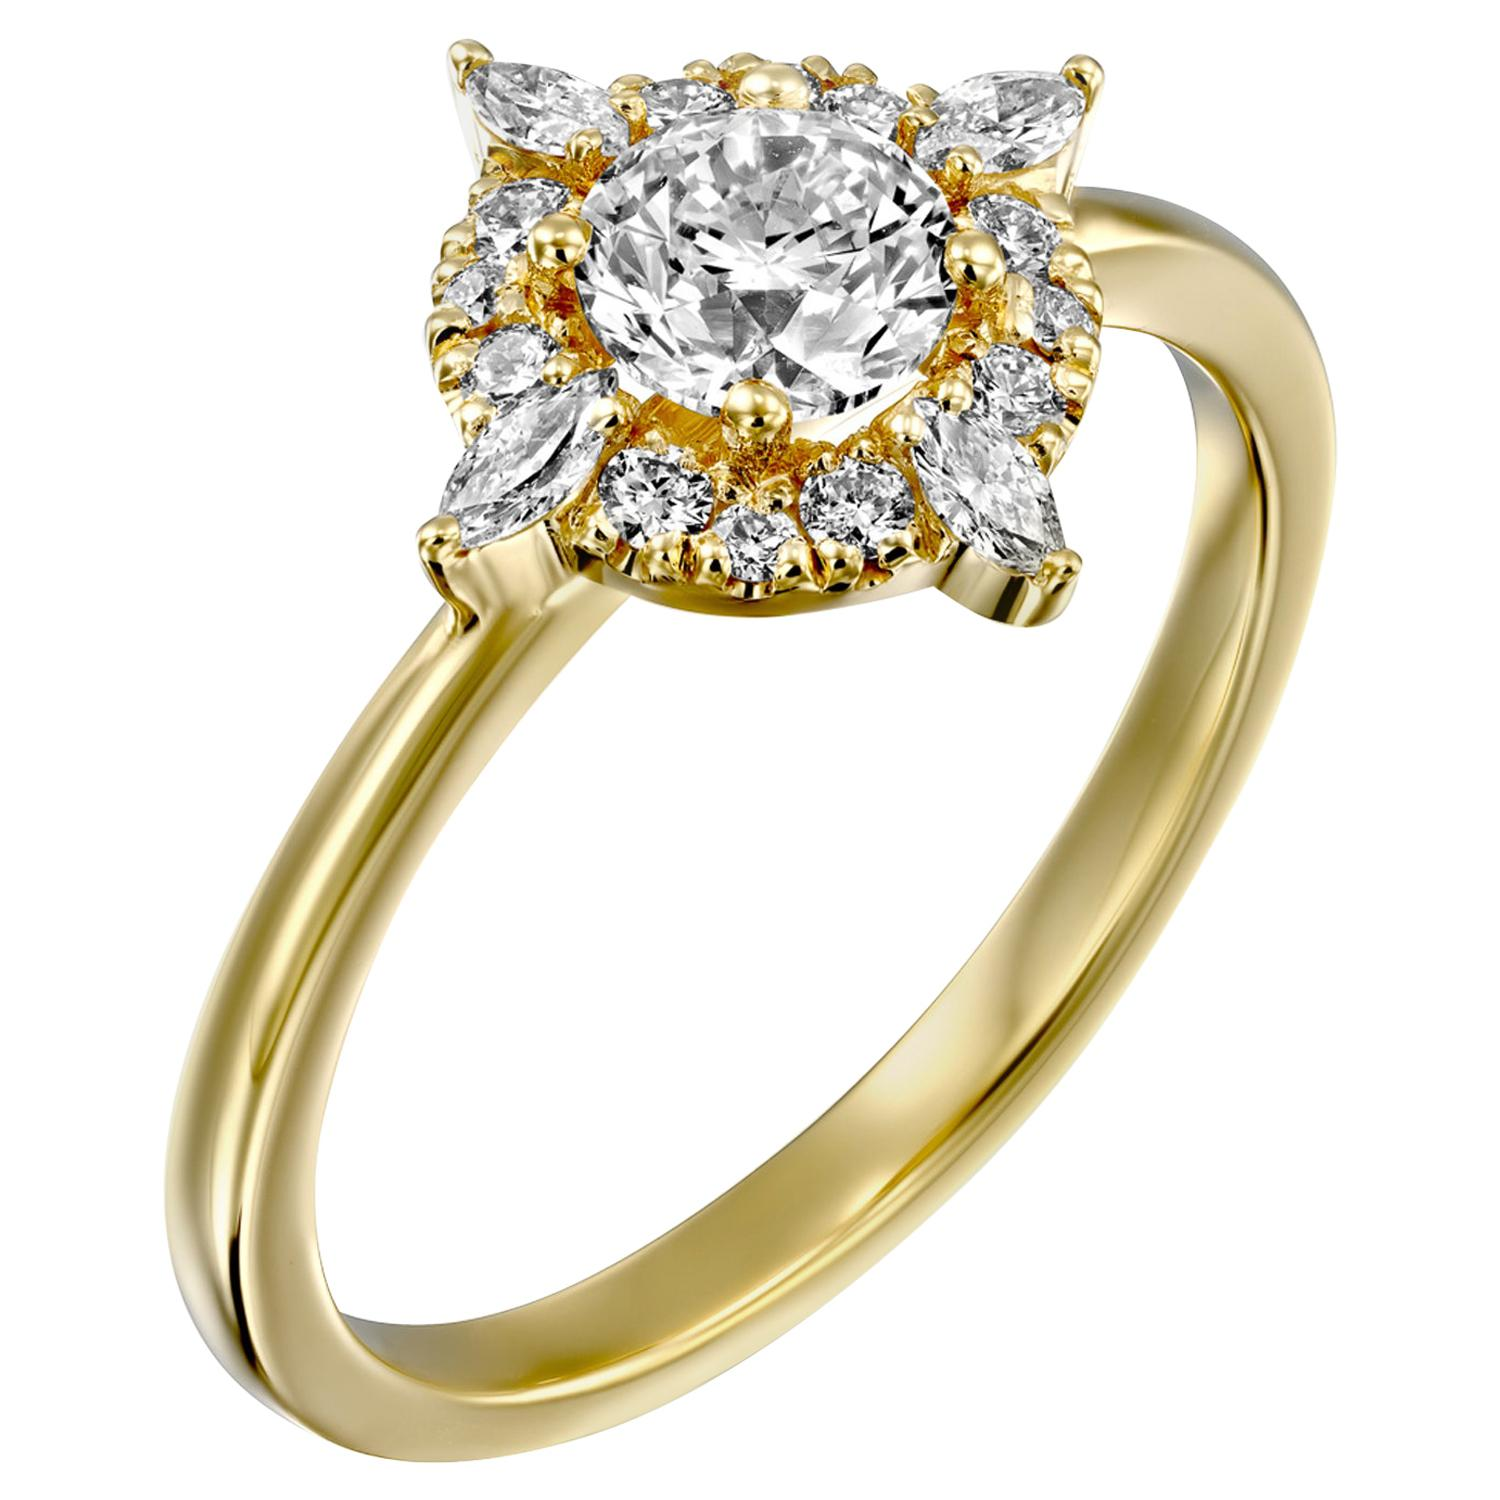 1/2 Carat GIA Diamond Engagement Ring, Vintage Halo 18 Karat Yellow Gold